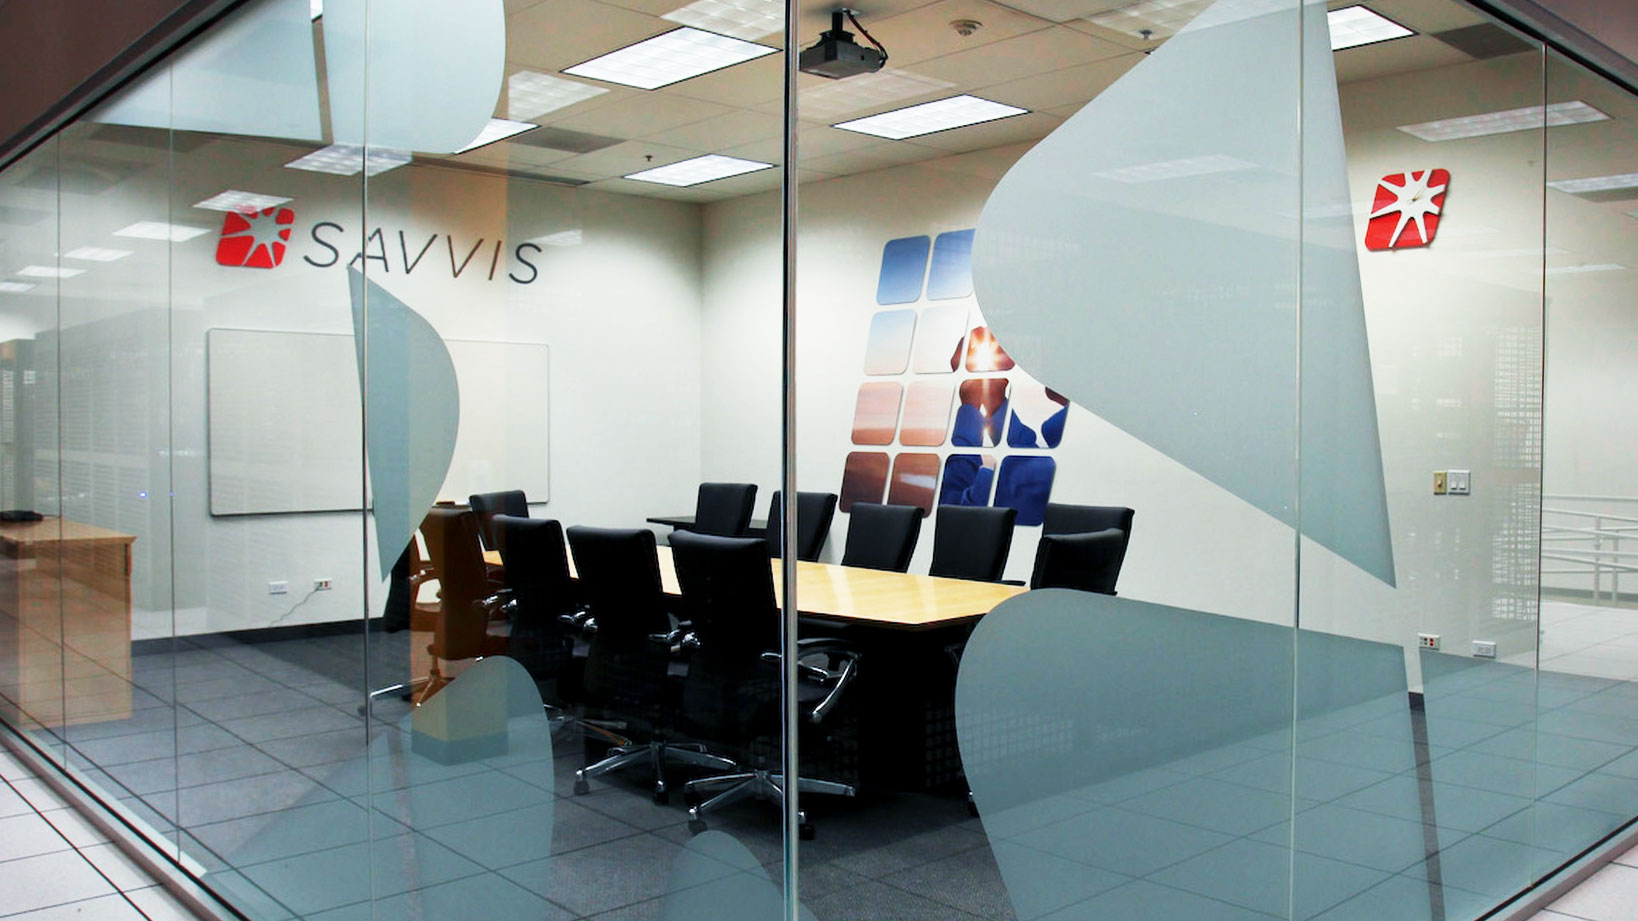 Savvis – Environmental Design and Large Format Printing